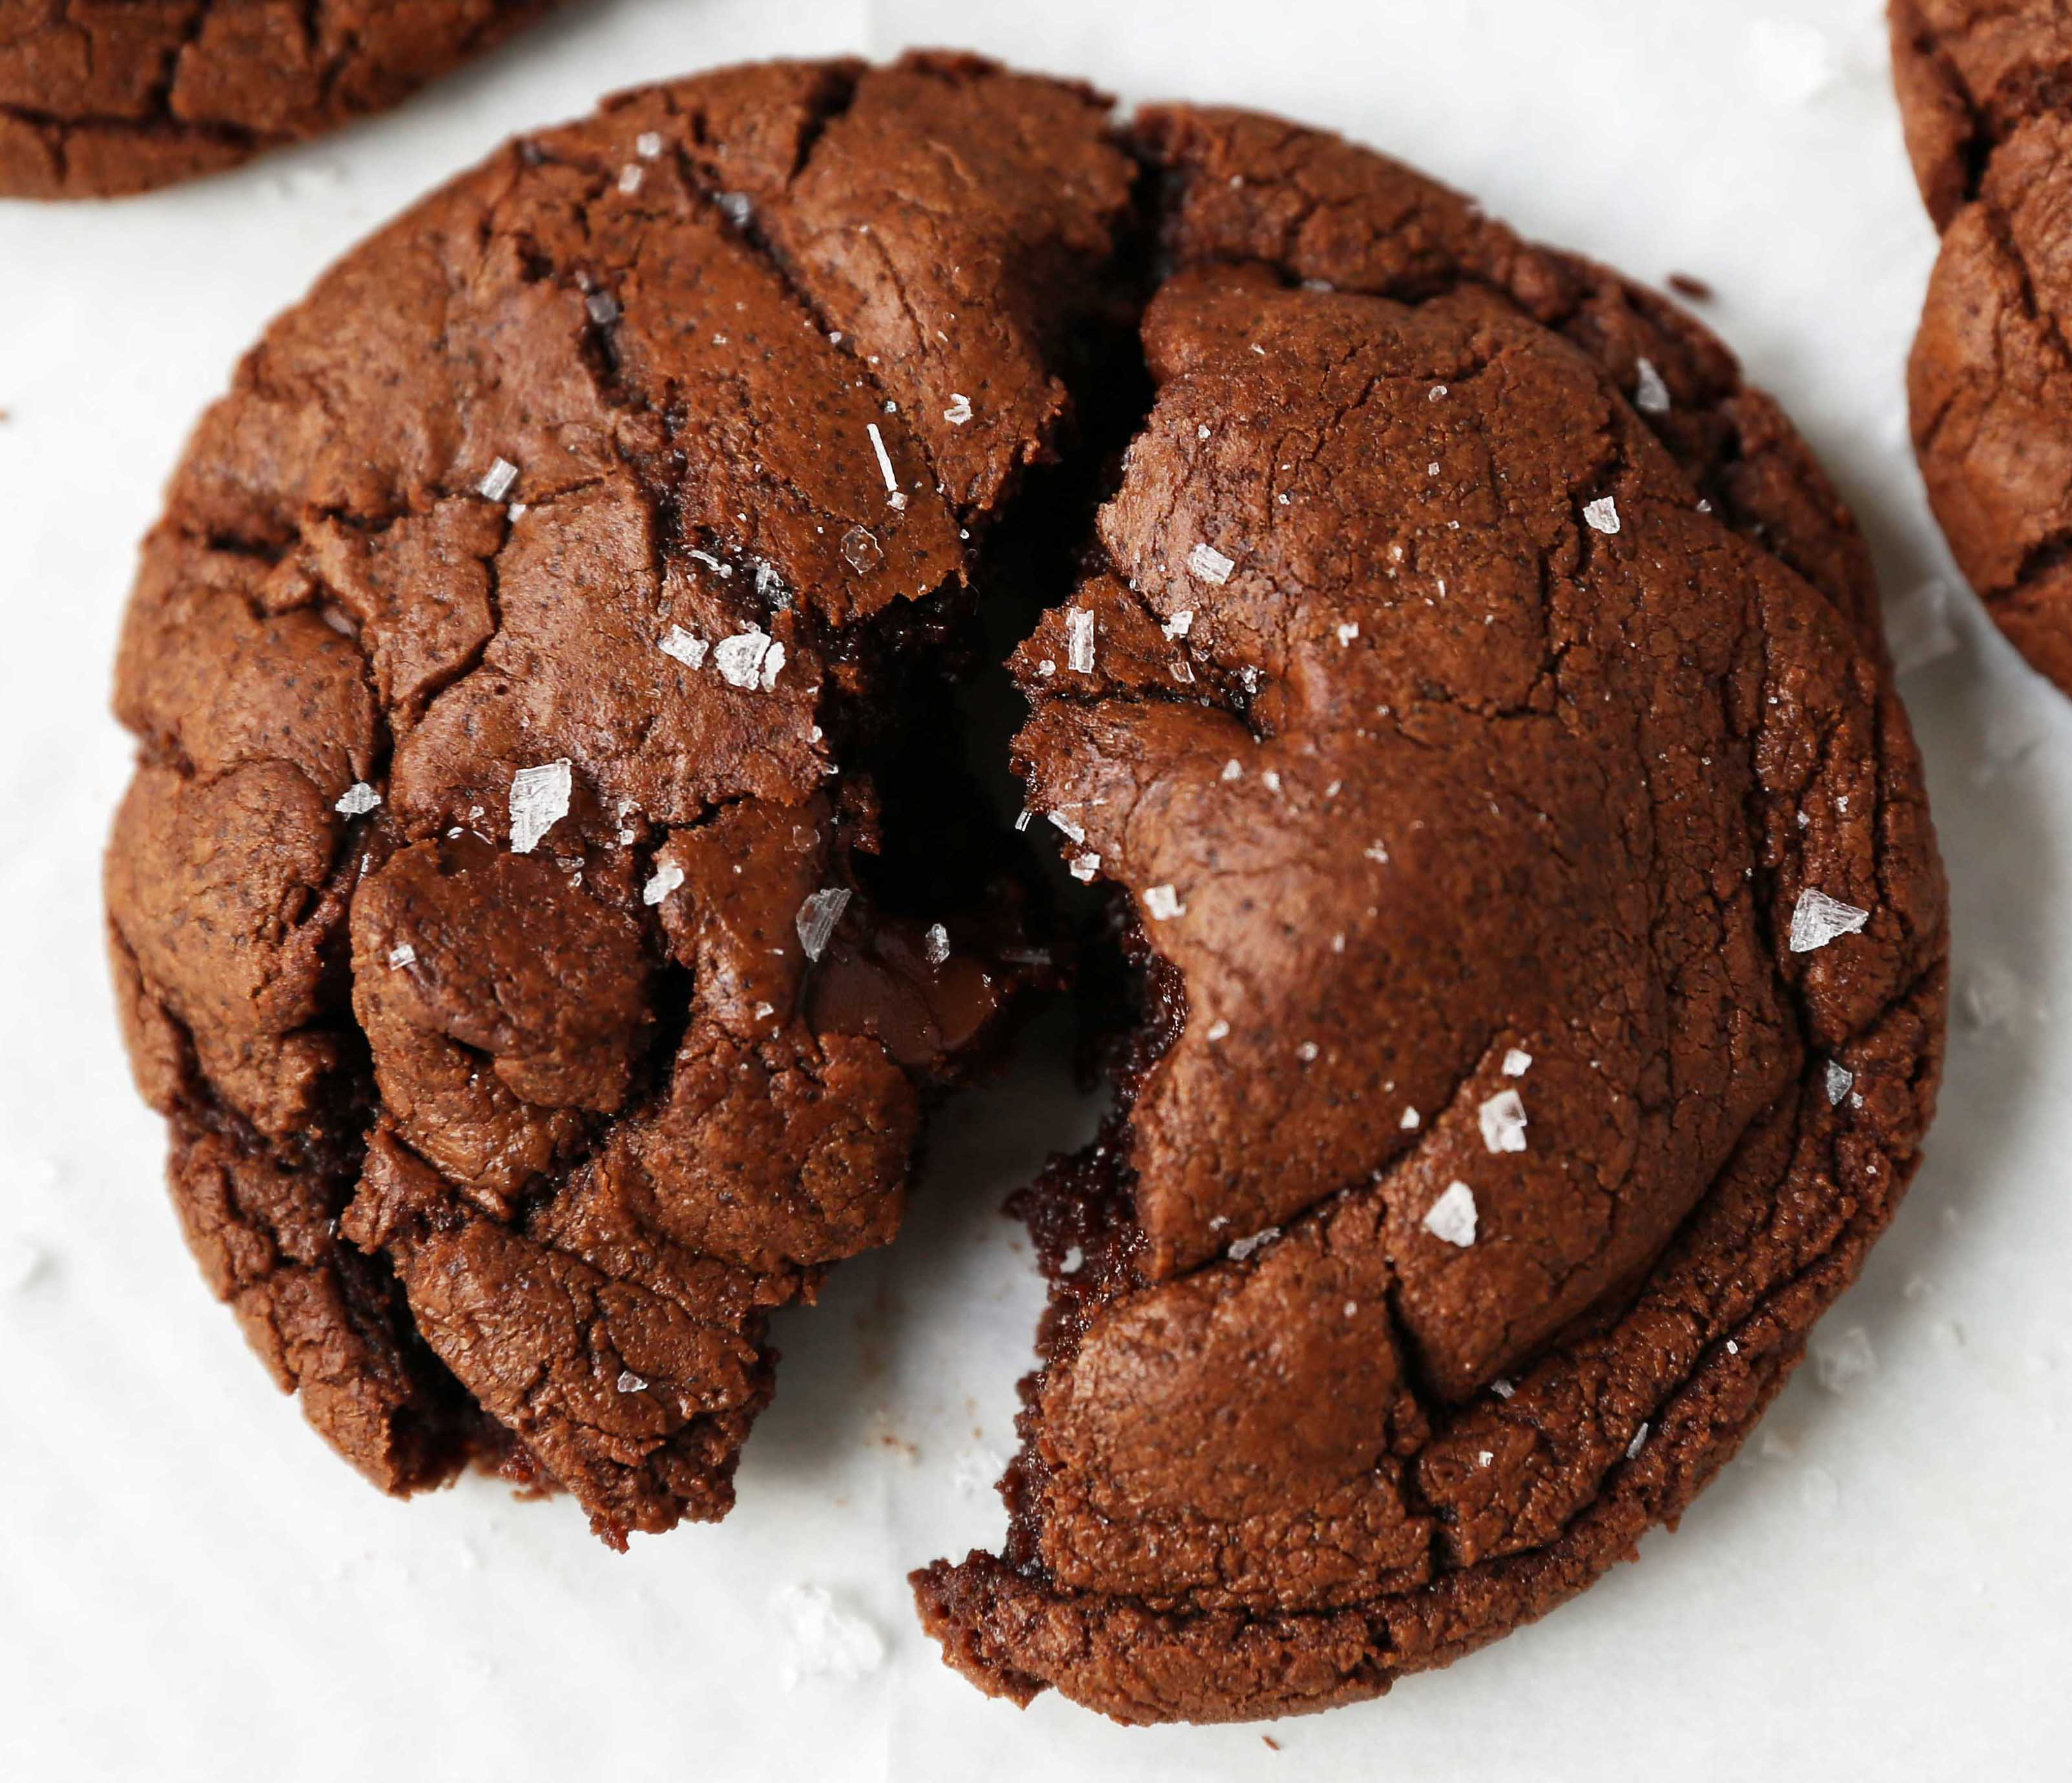 Chocolate Brownie Cookies. Rich, decadent triple chocolate cookies are so decadent. The perfect chocolate brownie cookie recipe! www.modernhoney.com #chocolatebrowniecookies #browniecookies #chocolatecookies